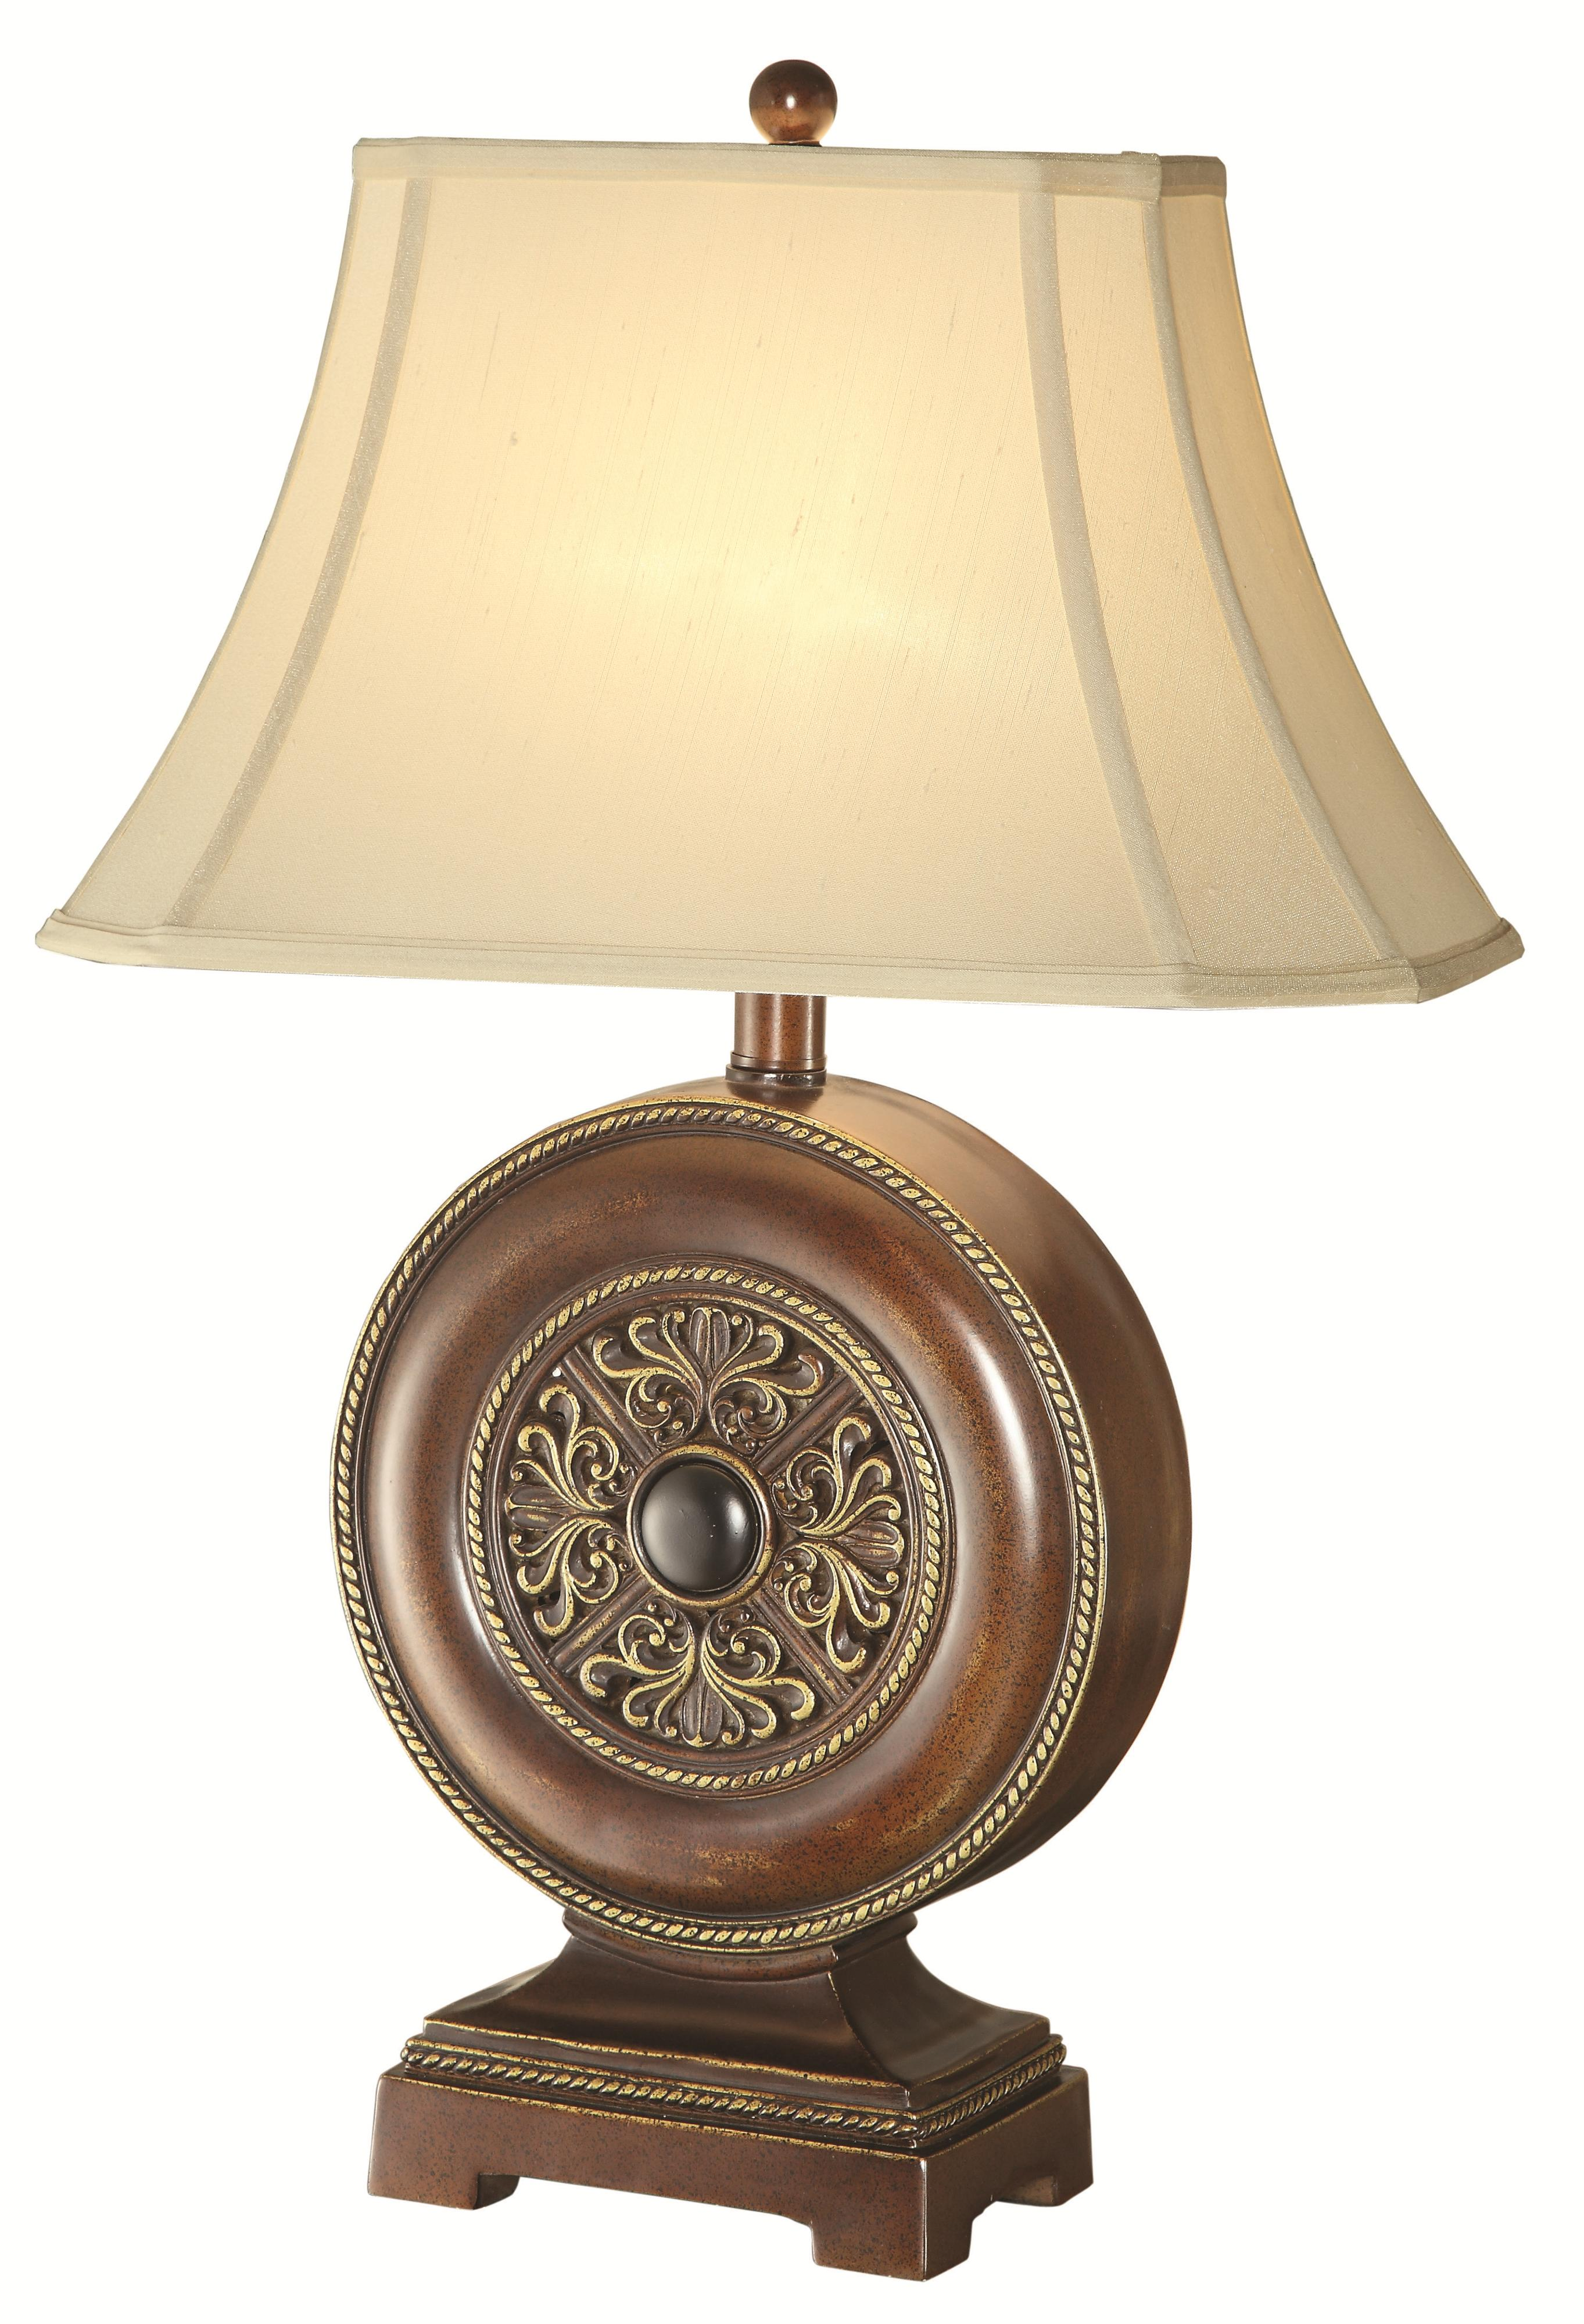 Coaster Table Lamps Table Lamp - Item Number: 901334